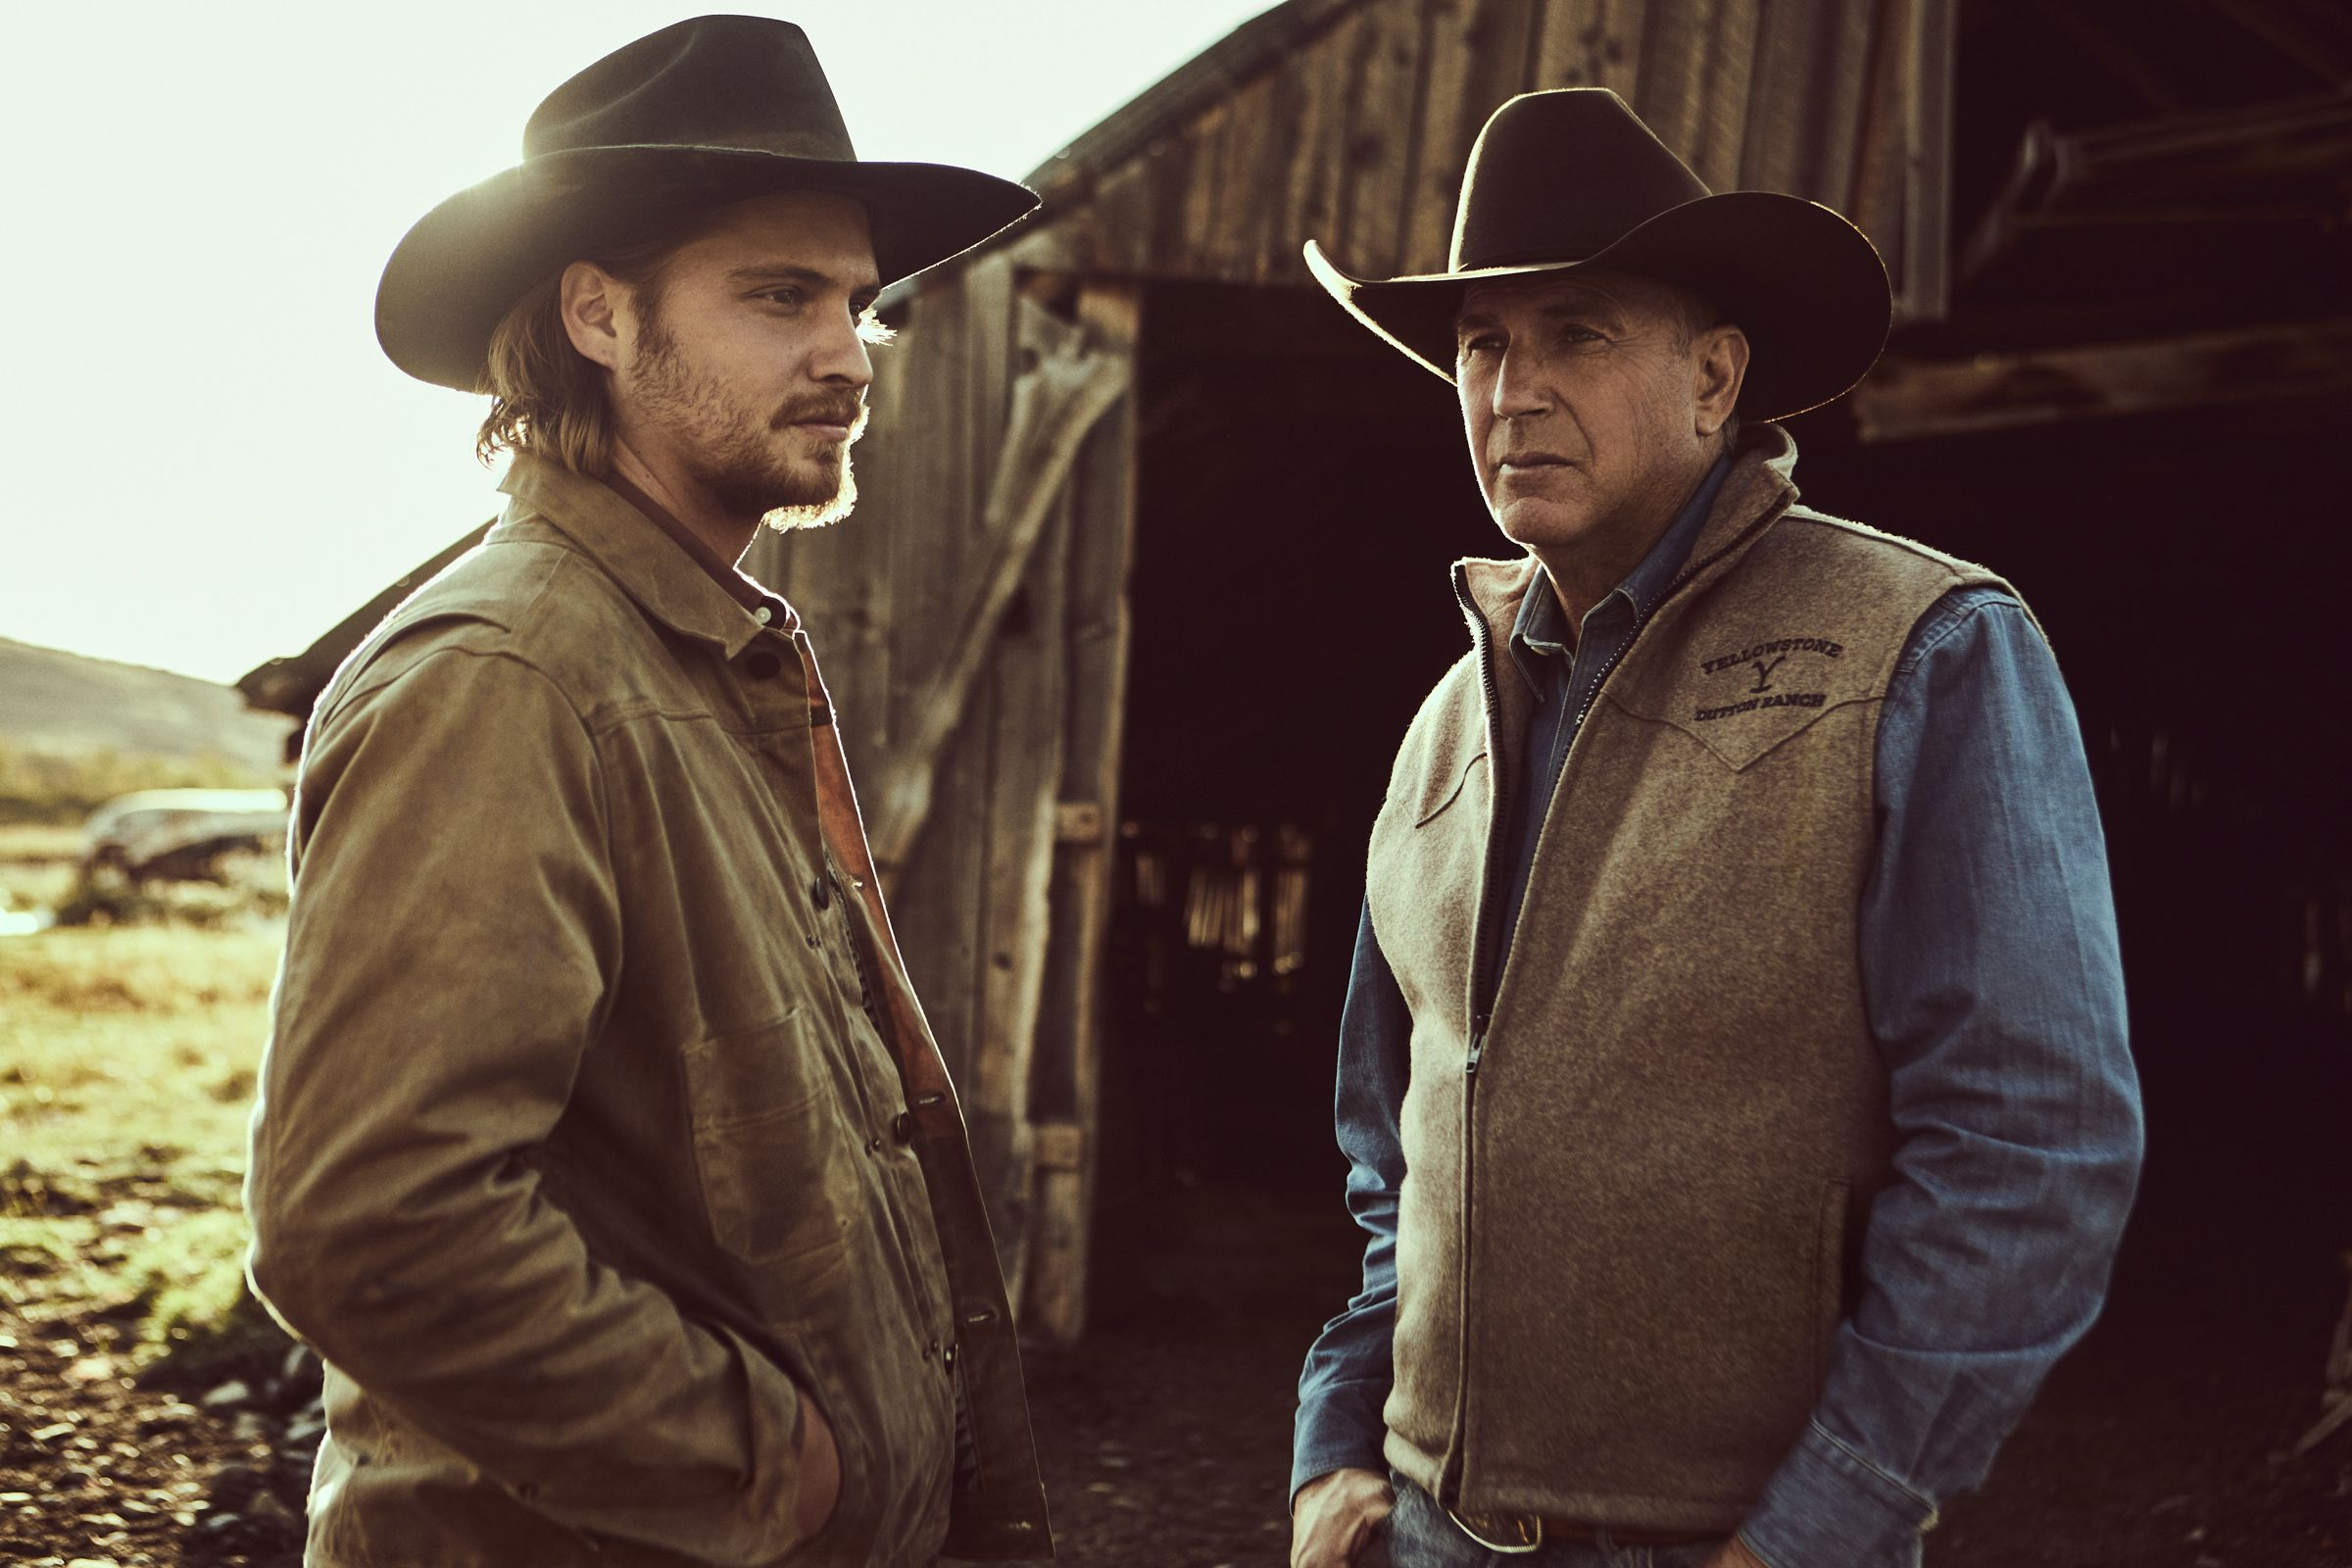 Kevin Costner Will Avenge His Dead Cattle In the Next Episode of Yellowstone